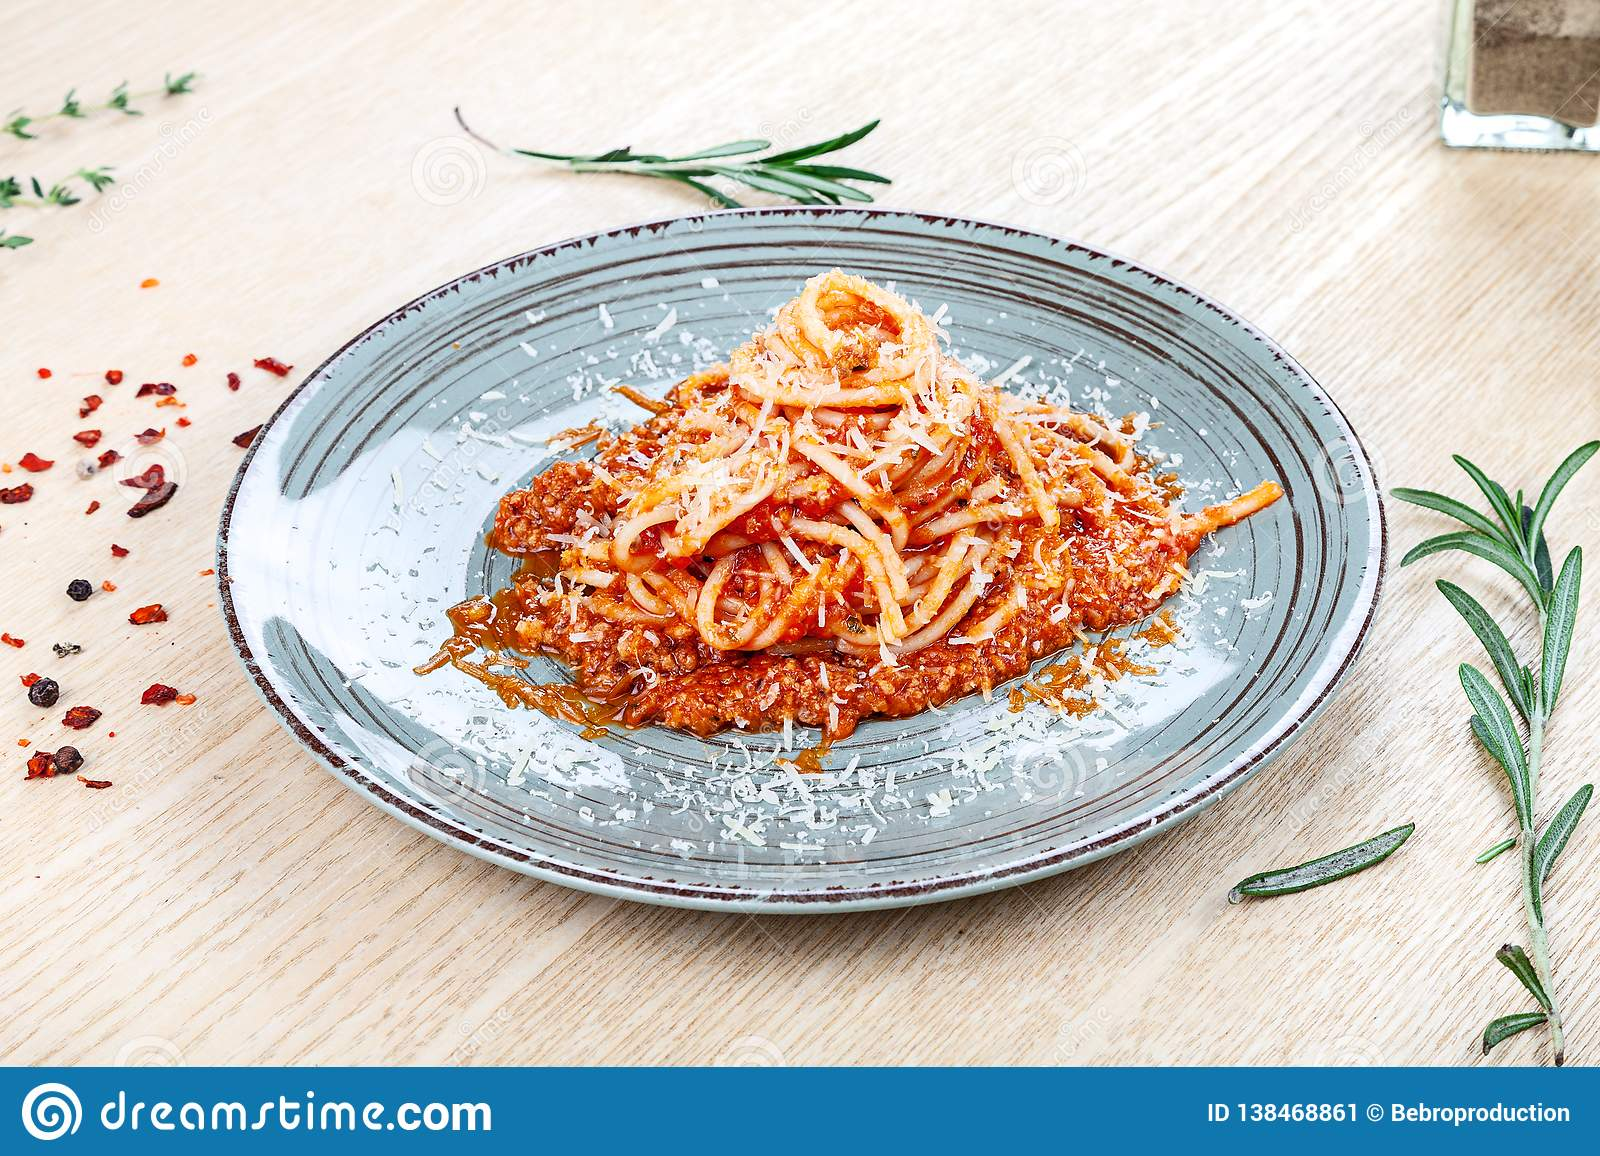 Close up view on traditional italian pasta with cherry tomato, herbs and spices on wooden background.